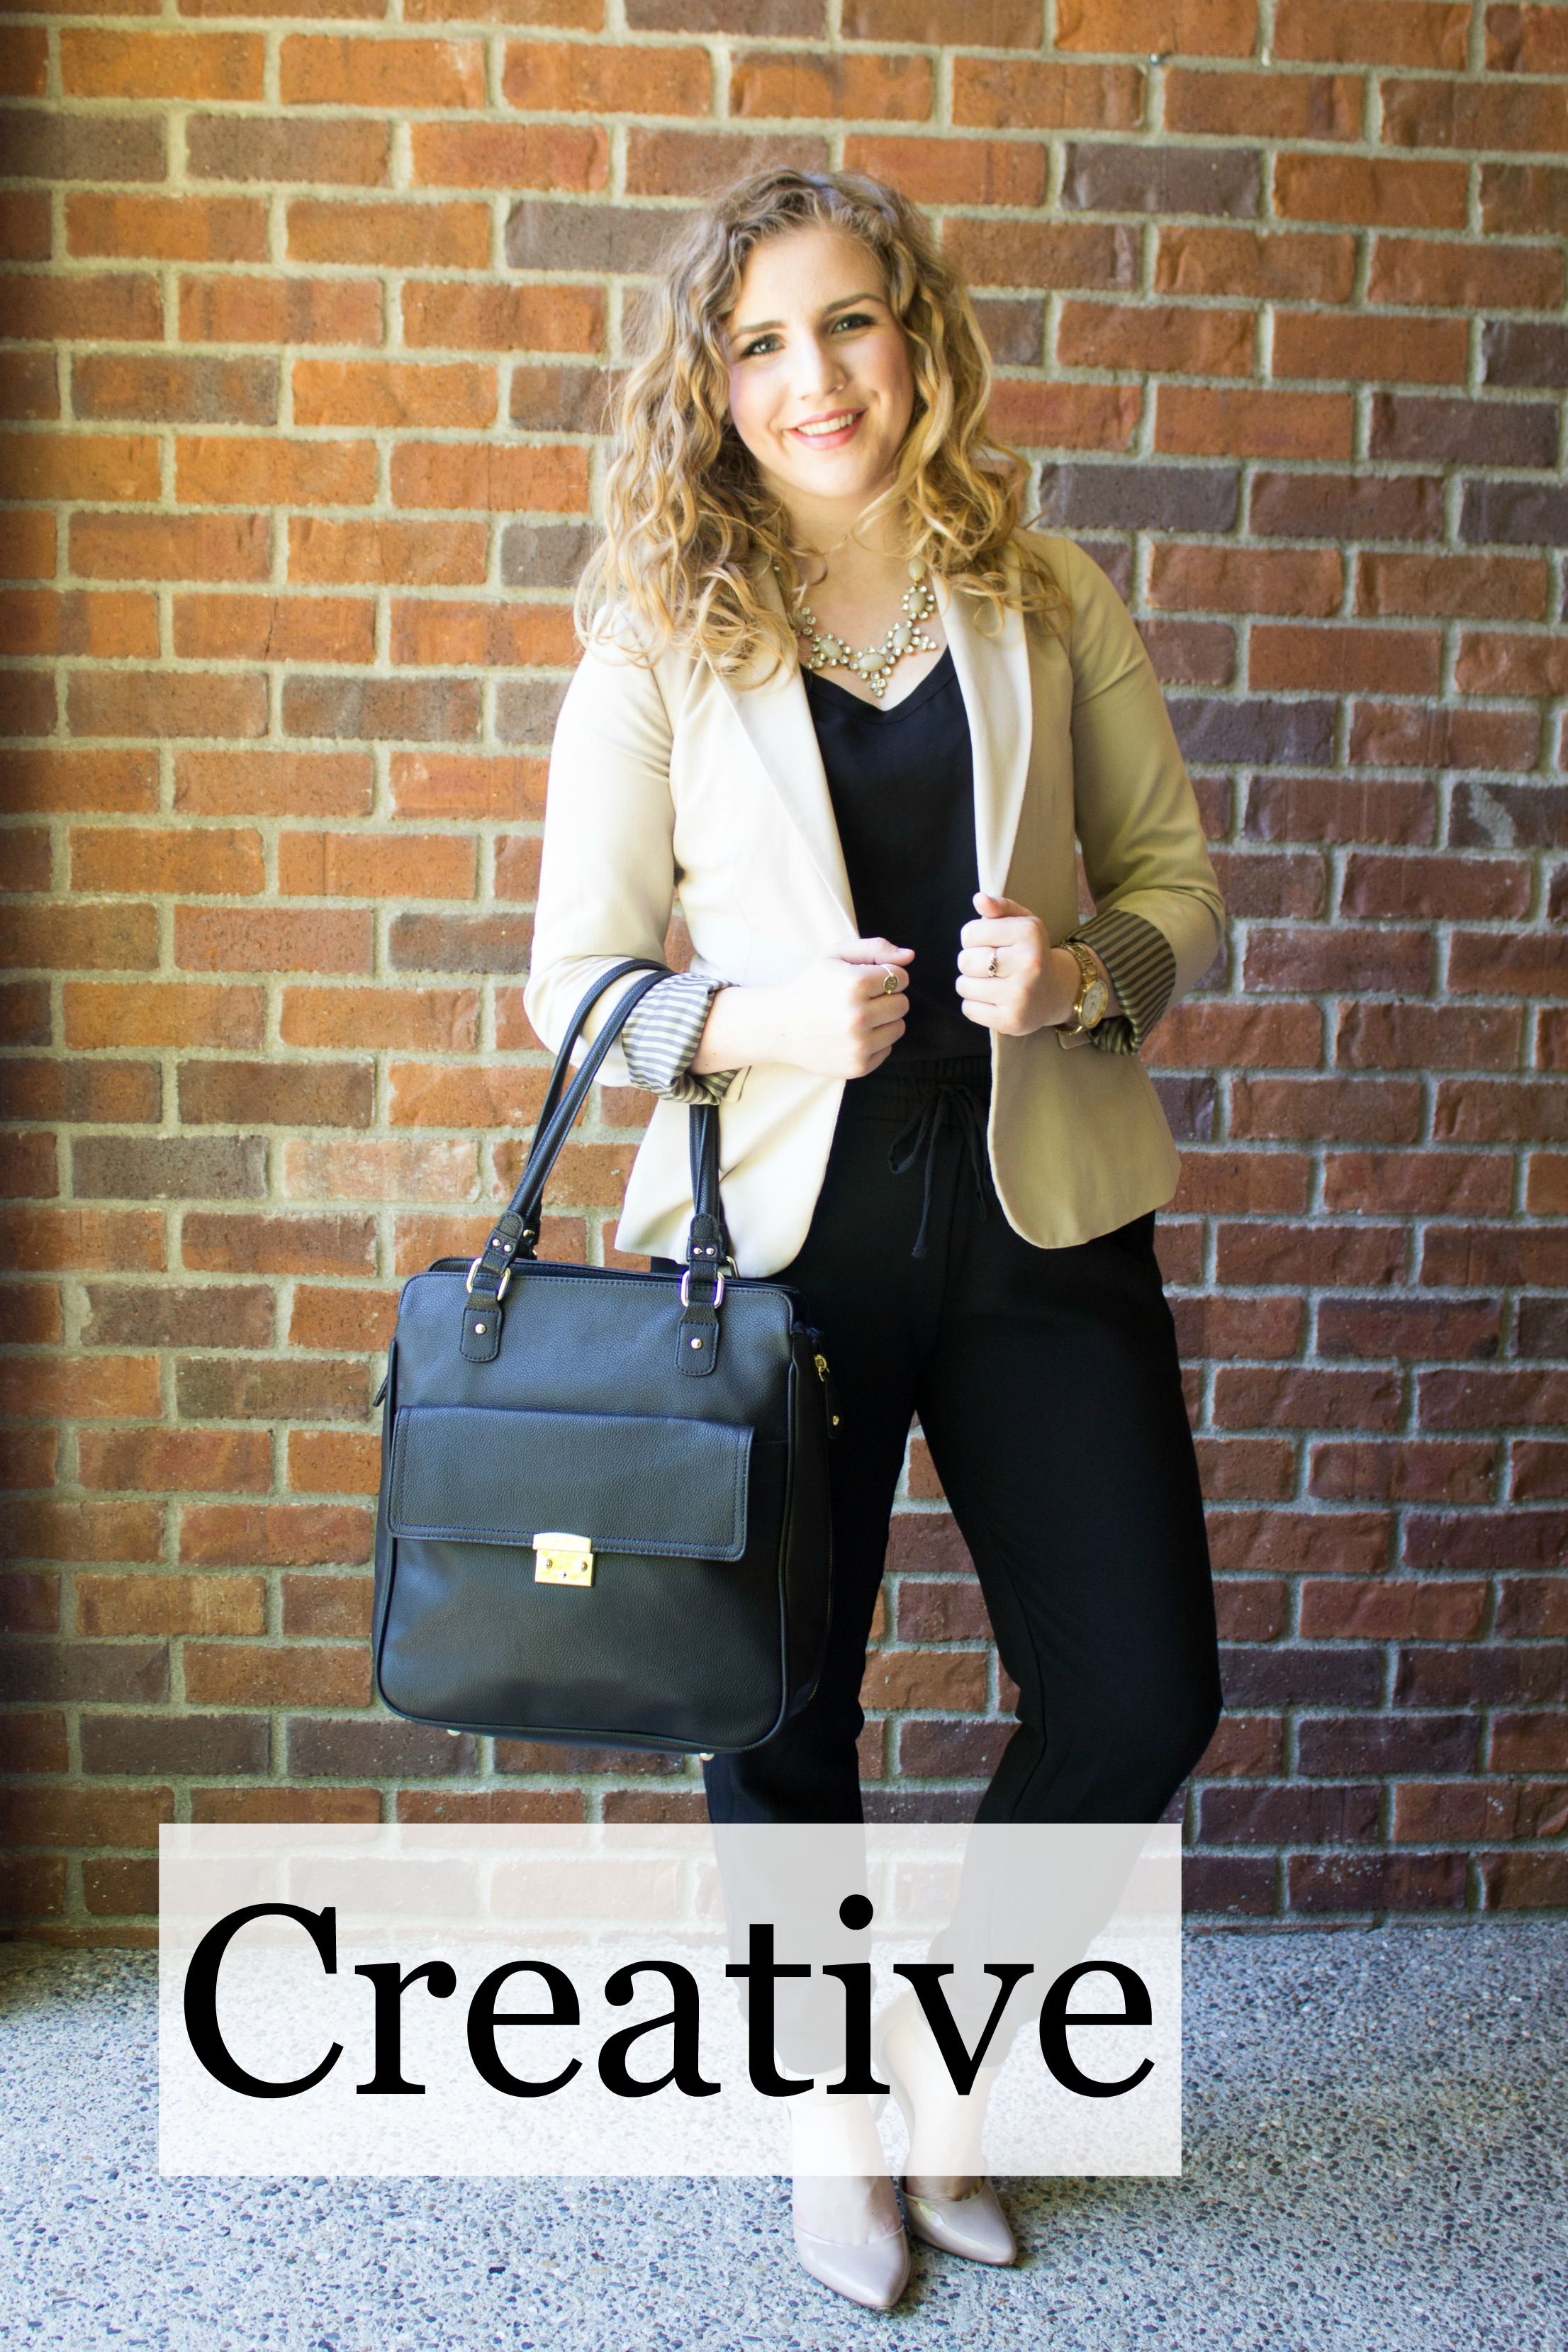 Interviews On Creative Living Interior: How To Dress For Different Types Of Interviews